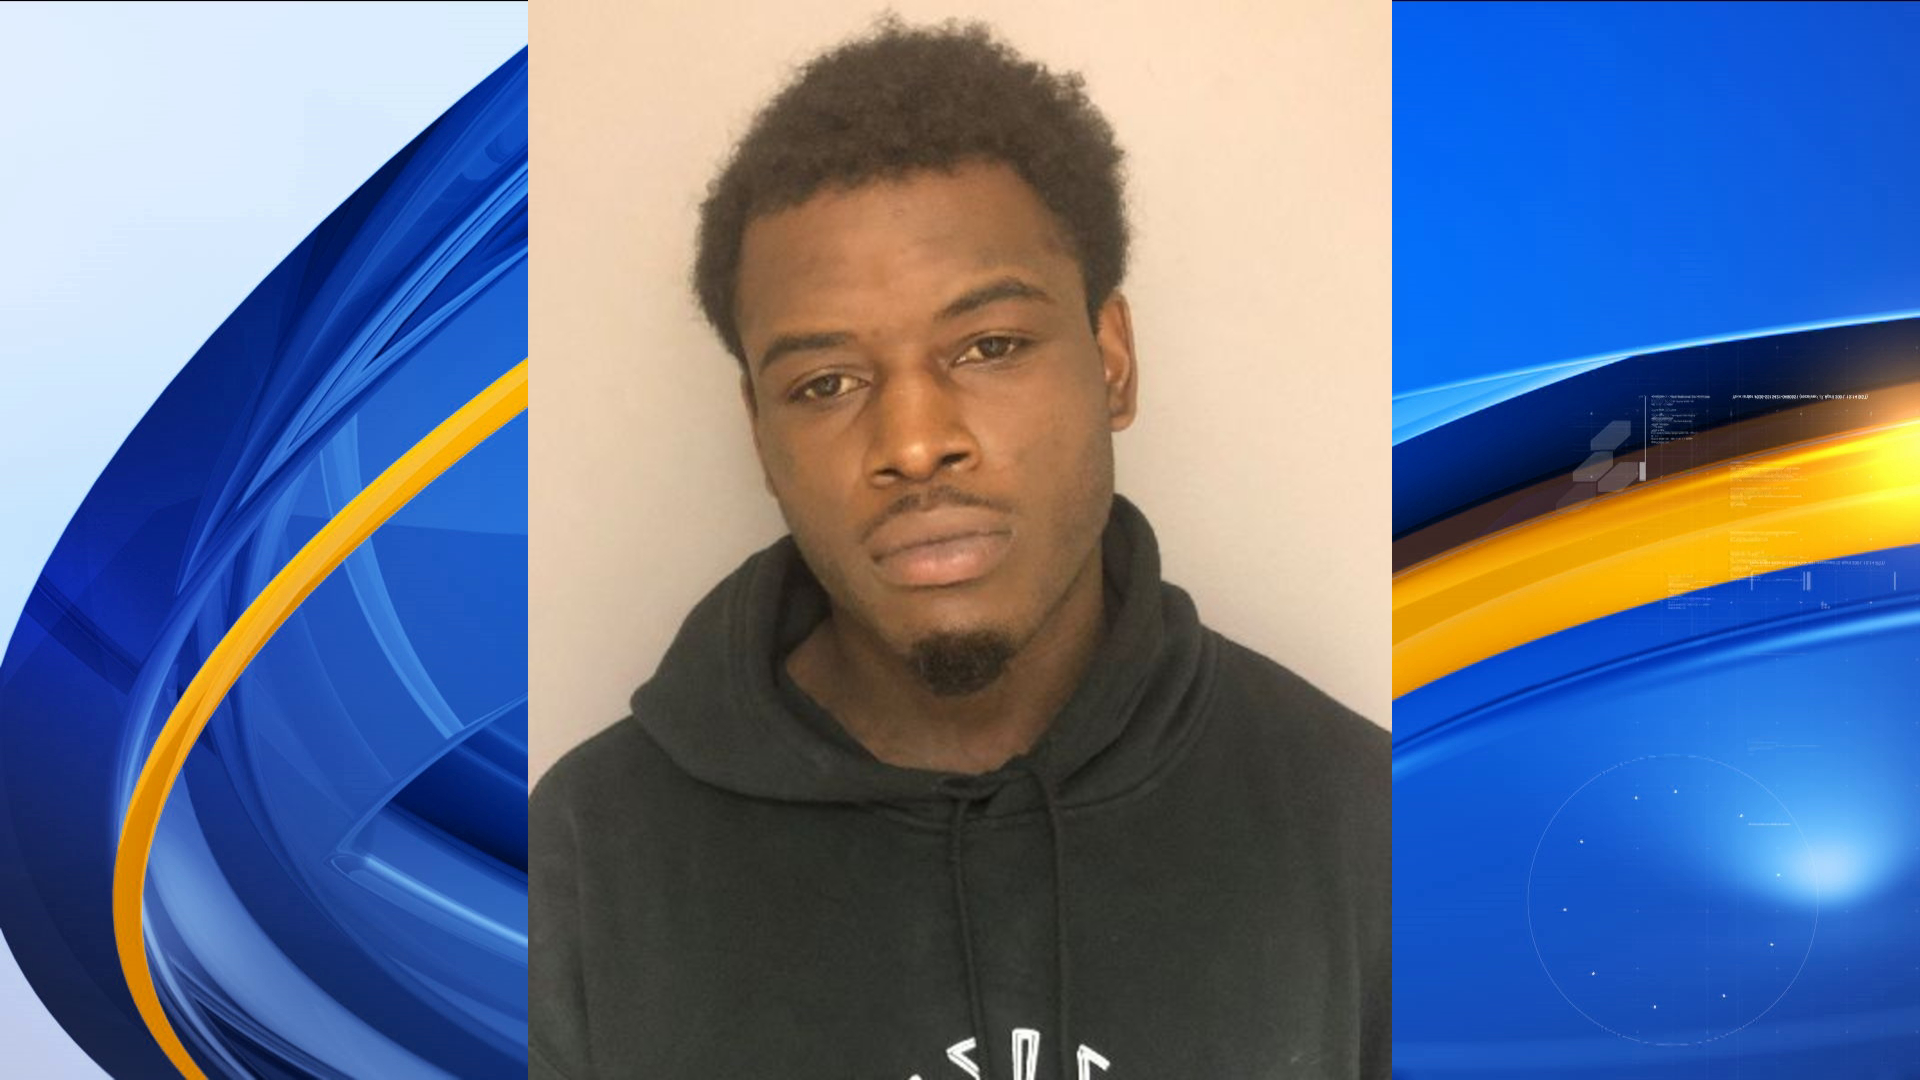 Stanley Marquise Smith, 30, was found with property stolen from two different vehicles and a gun reported stolen from Decatur in June.